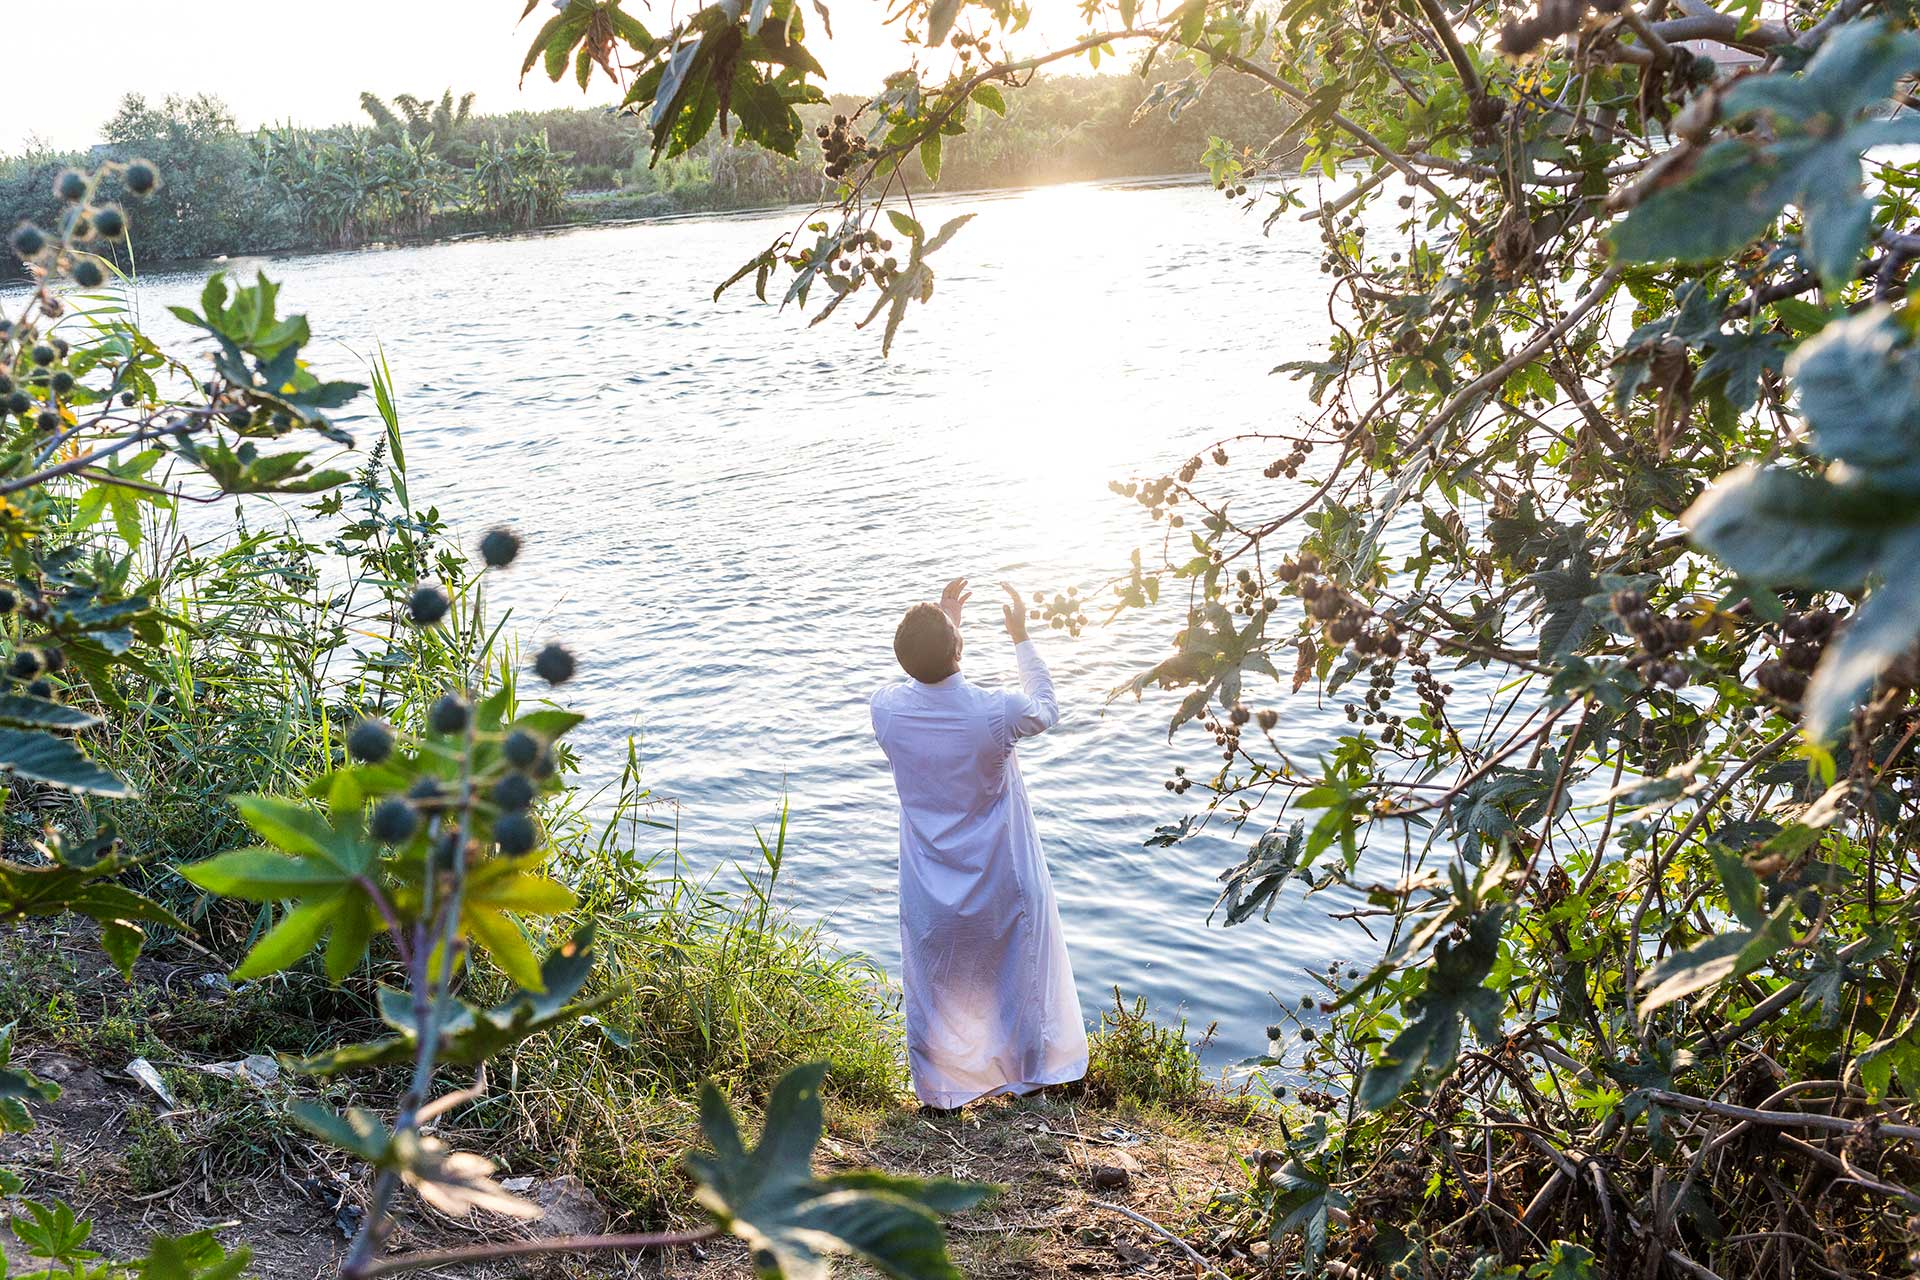 National Geographic News: Inside the World of Egypt's Salafist MuslimsAbdul Rahman, a 27-year-old Salafist from Al Mansurah, Egypt, prays—often with great intensity and emotion—on the banks of the Nile River.